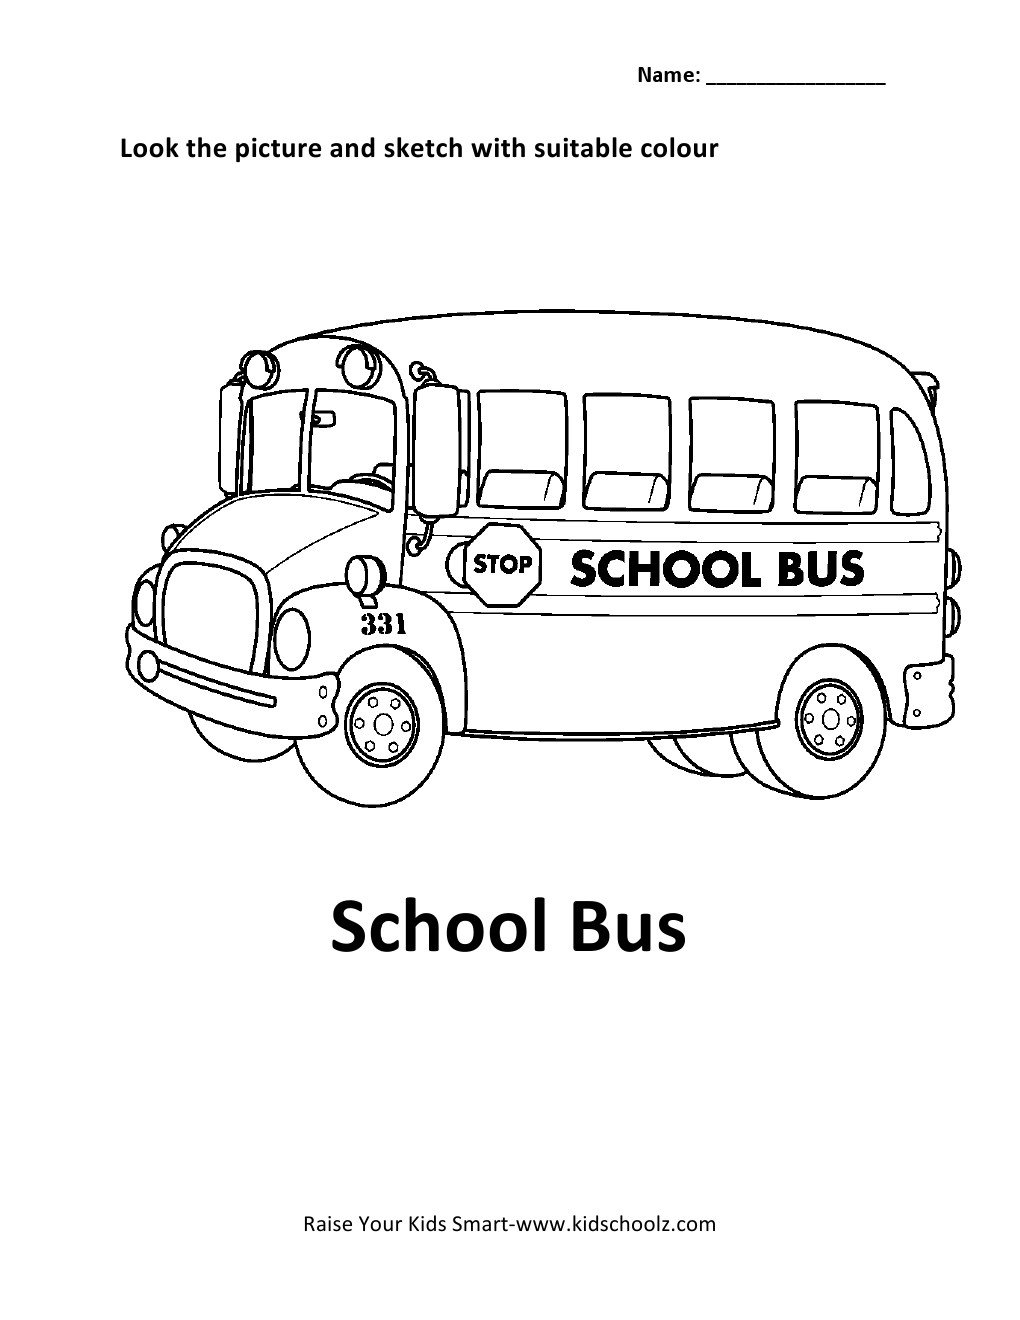 Colouring sheets for lkg - Coloring Worksheets For Lkg Vehicles Colouring Worksheet School Bus